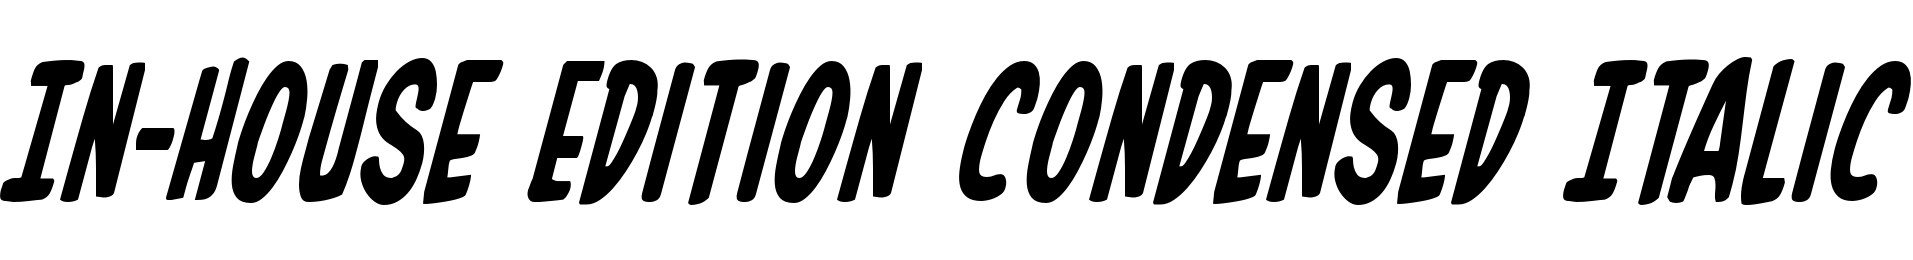 In-House Edition Condensed Italic